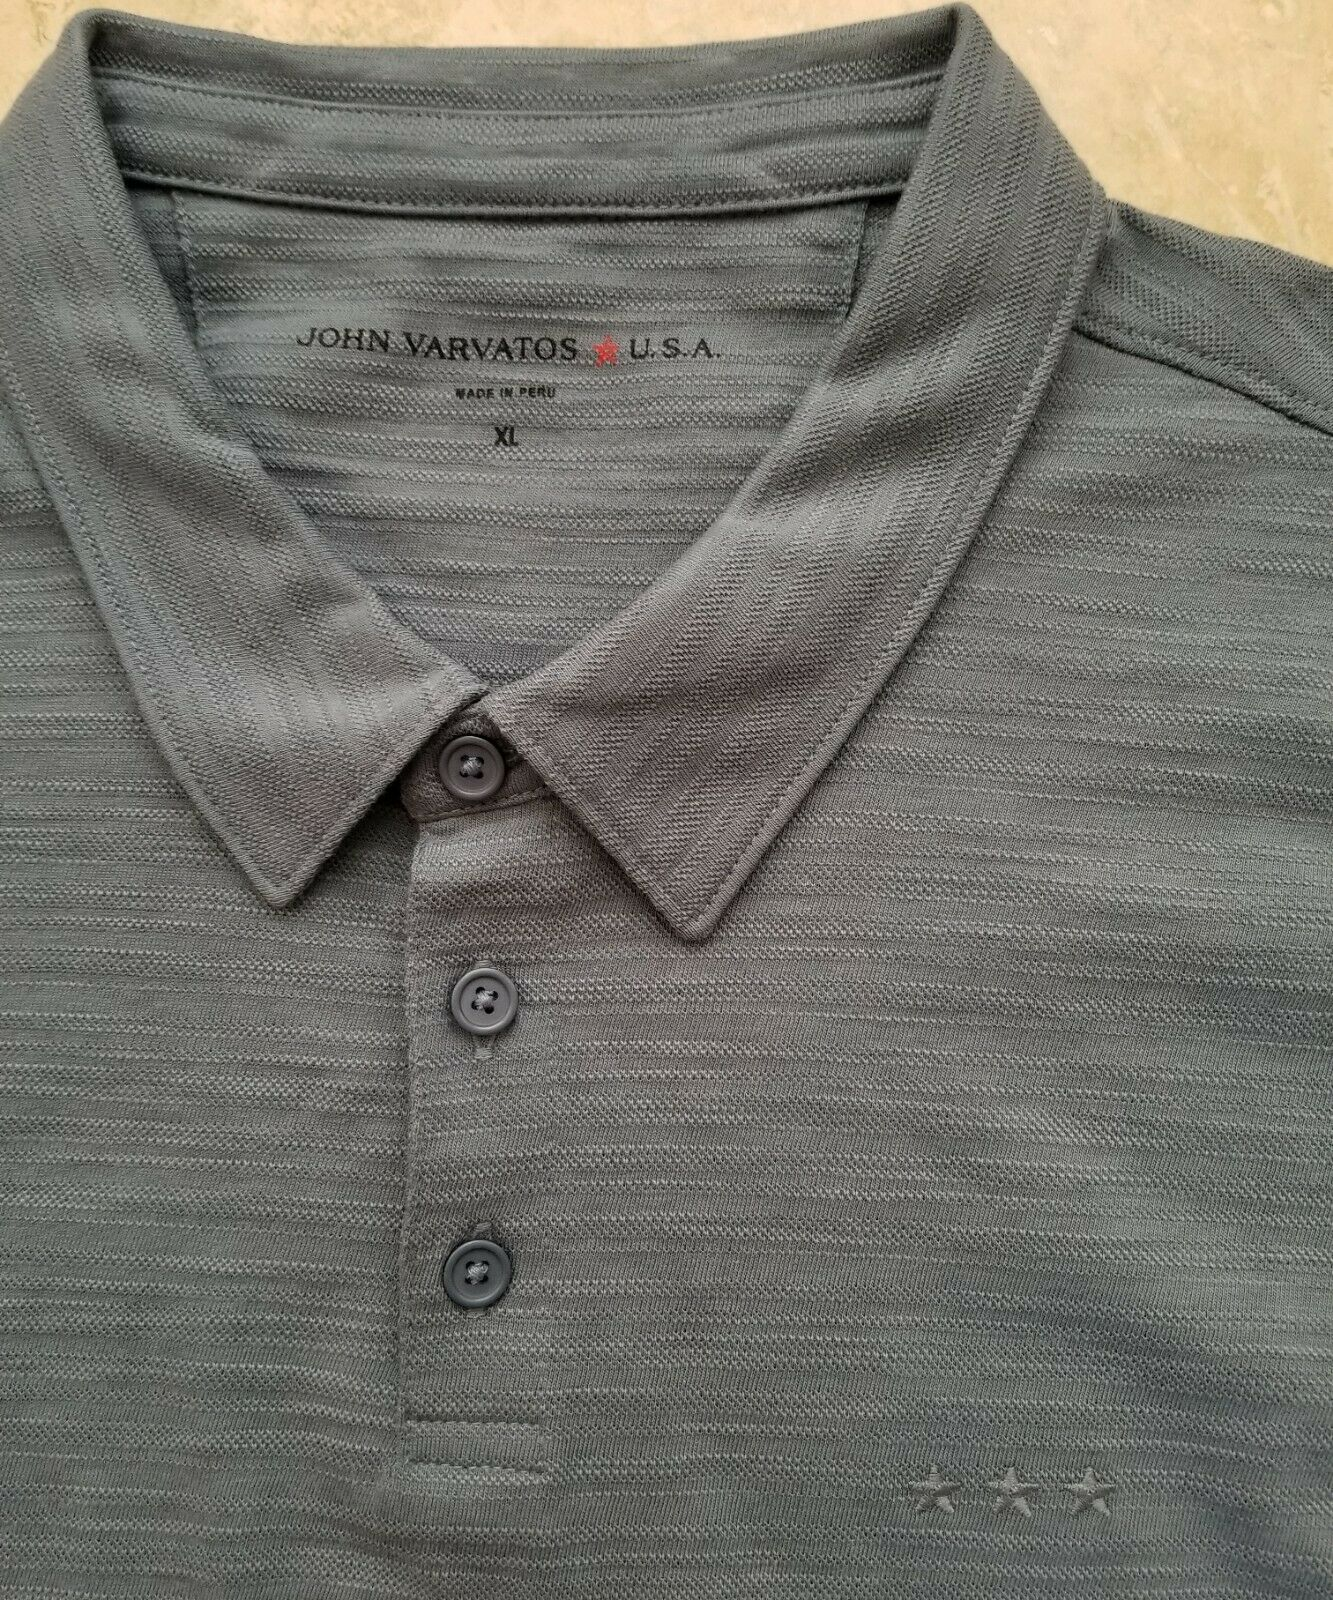 NWT John Varvatos Star USA Men's Short Sleeve Basic Polo Shirt Cotton